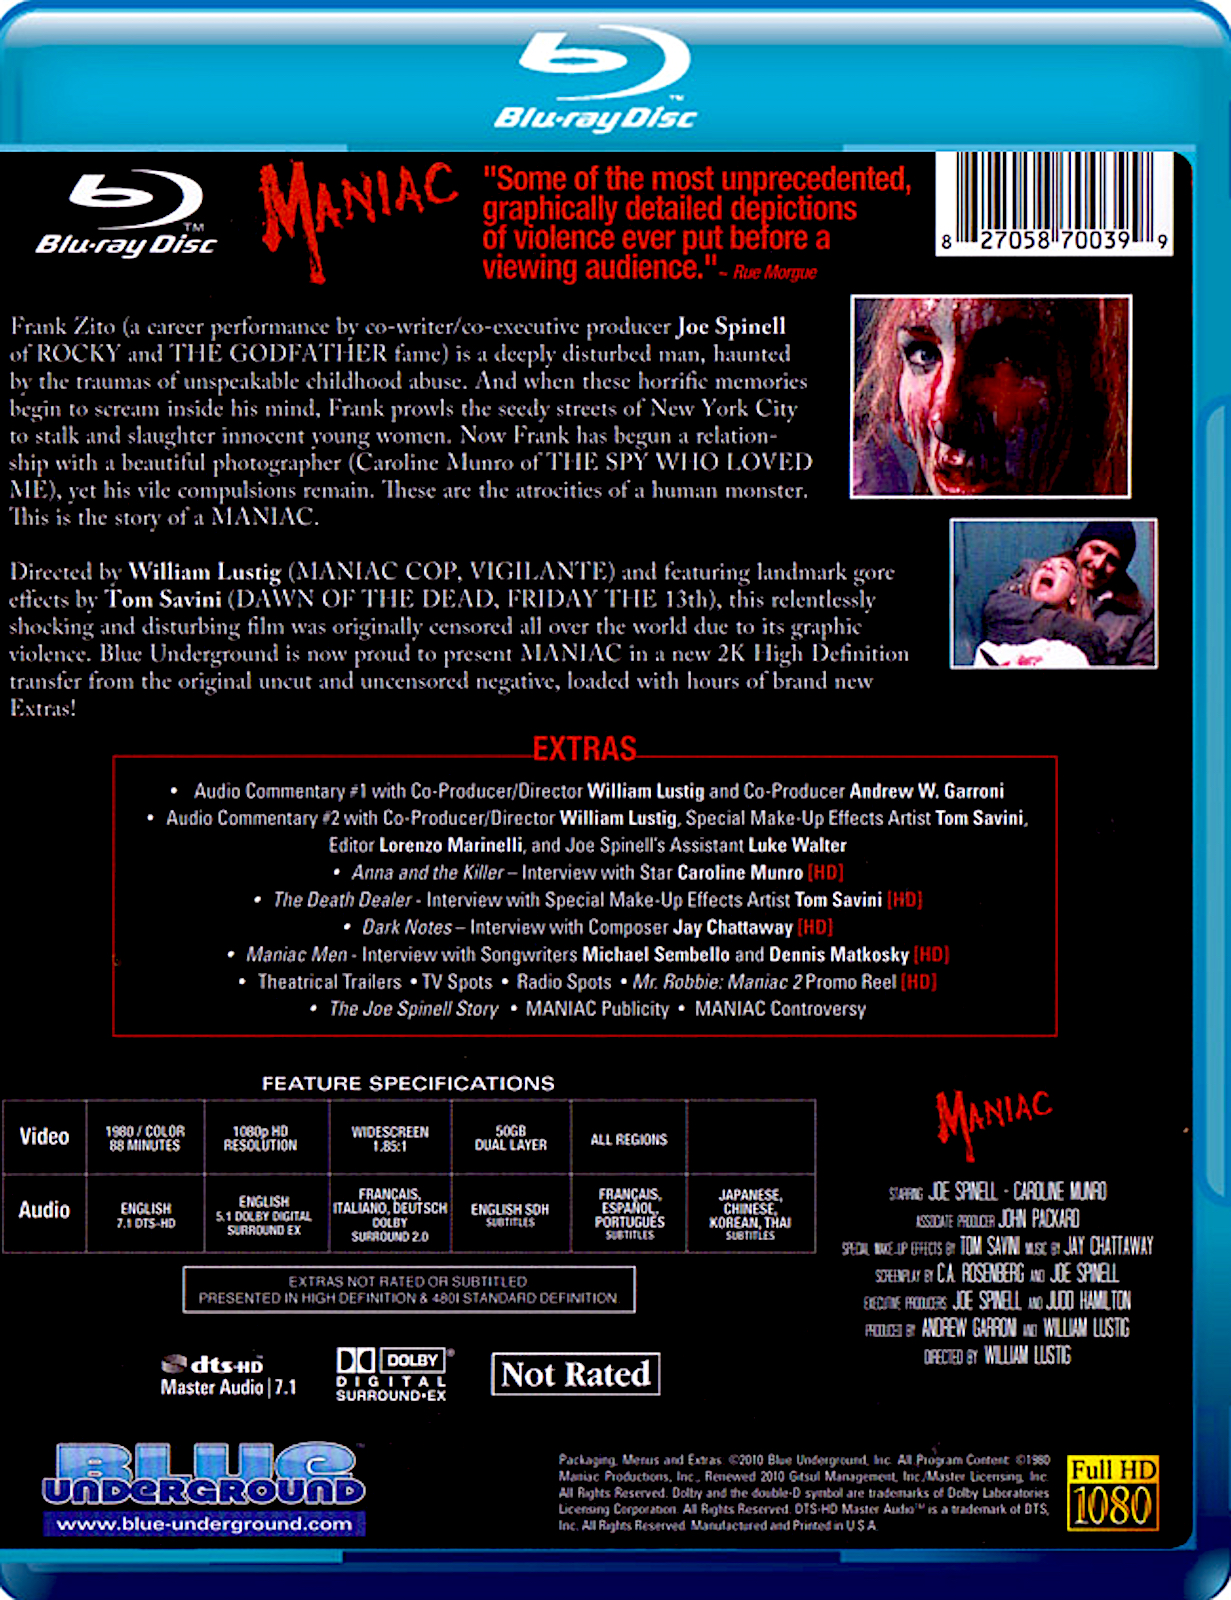 Blu-Ray And Dvd Covers Blue Underground Blu-Rays The -5177